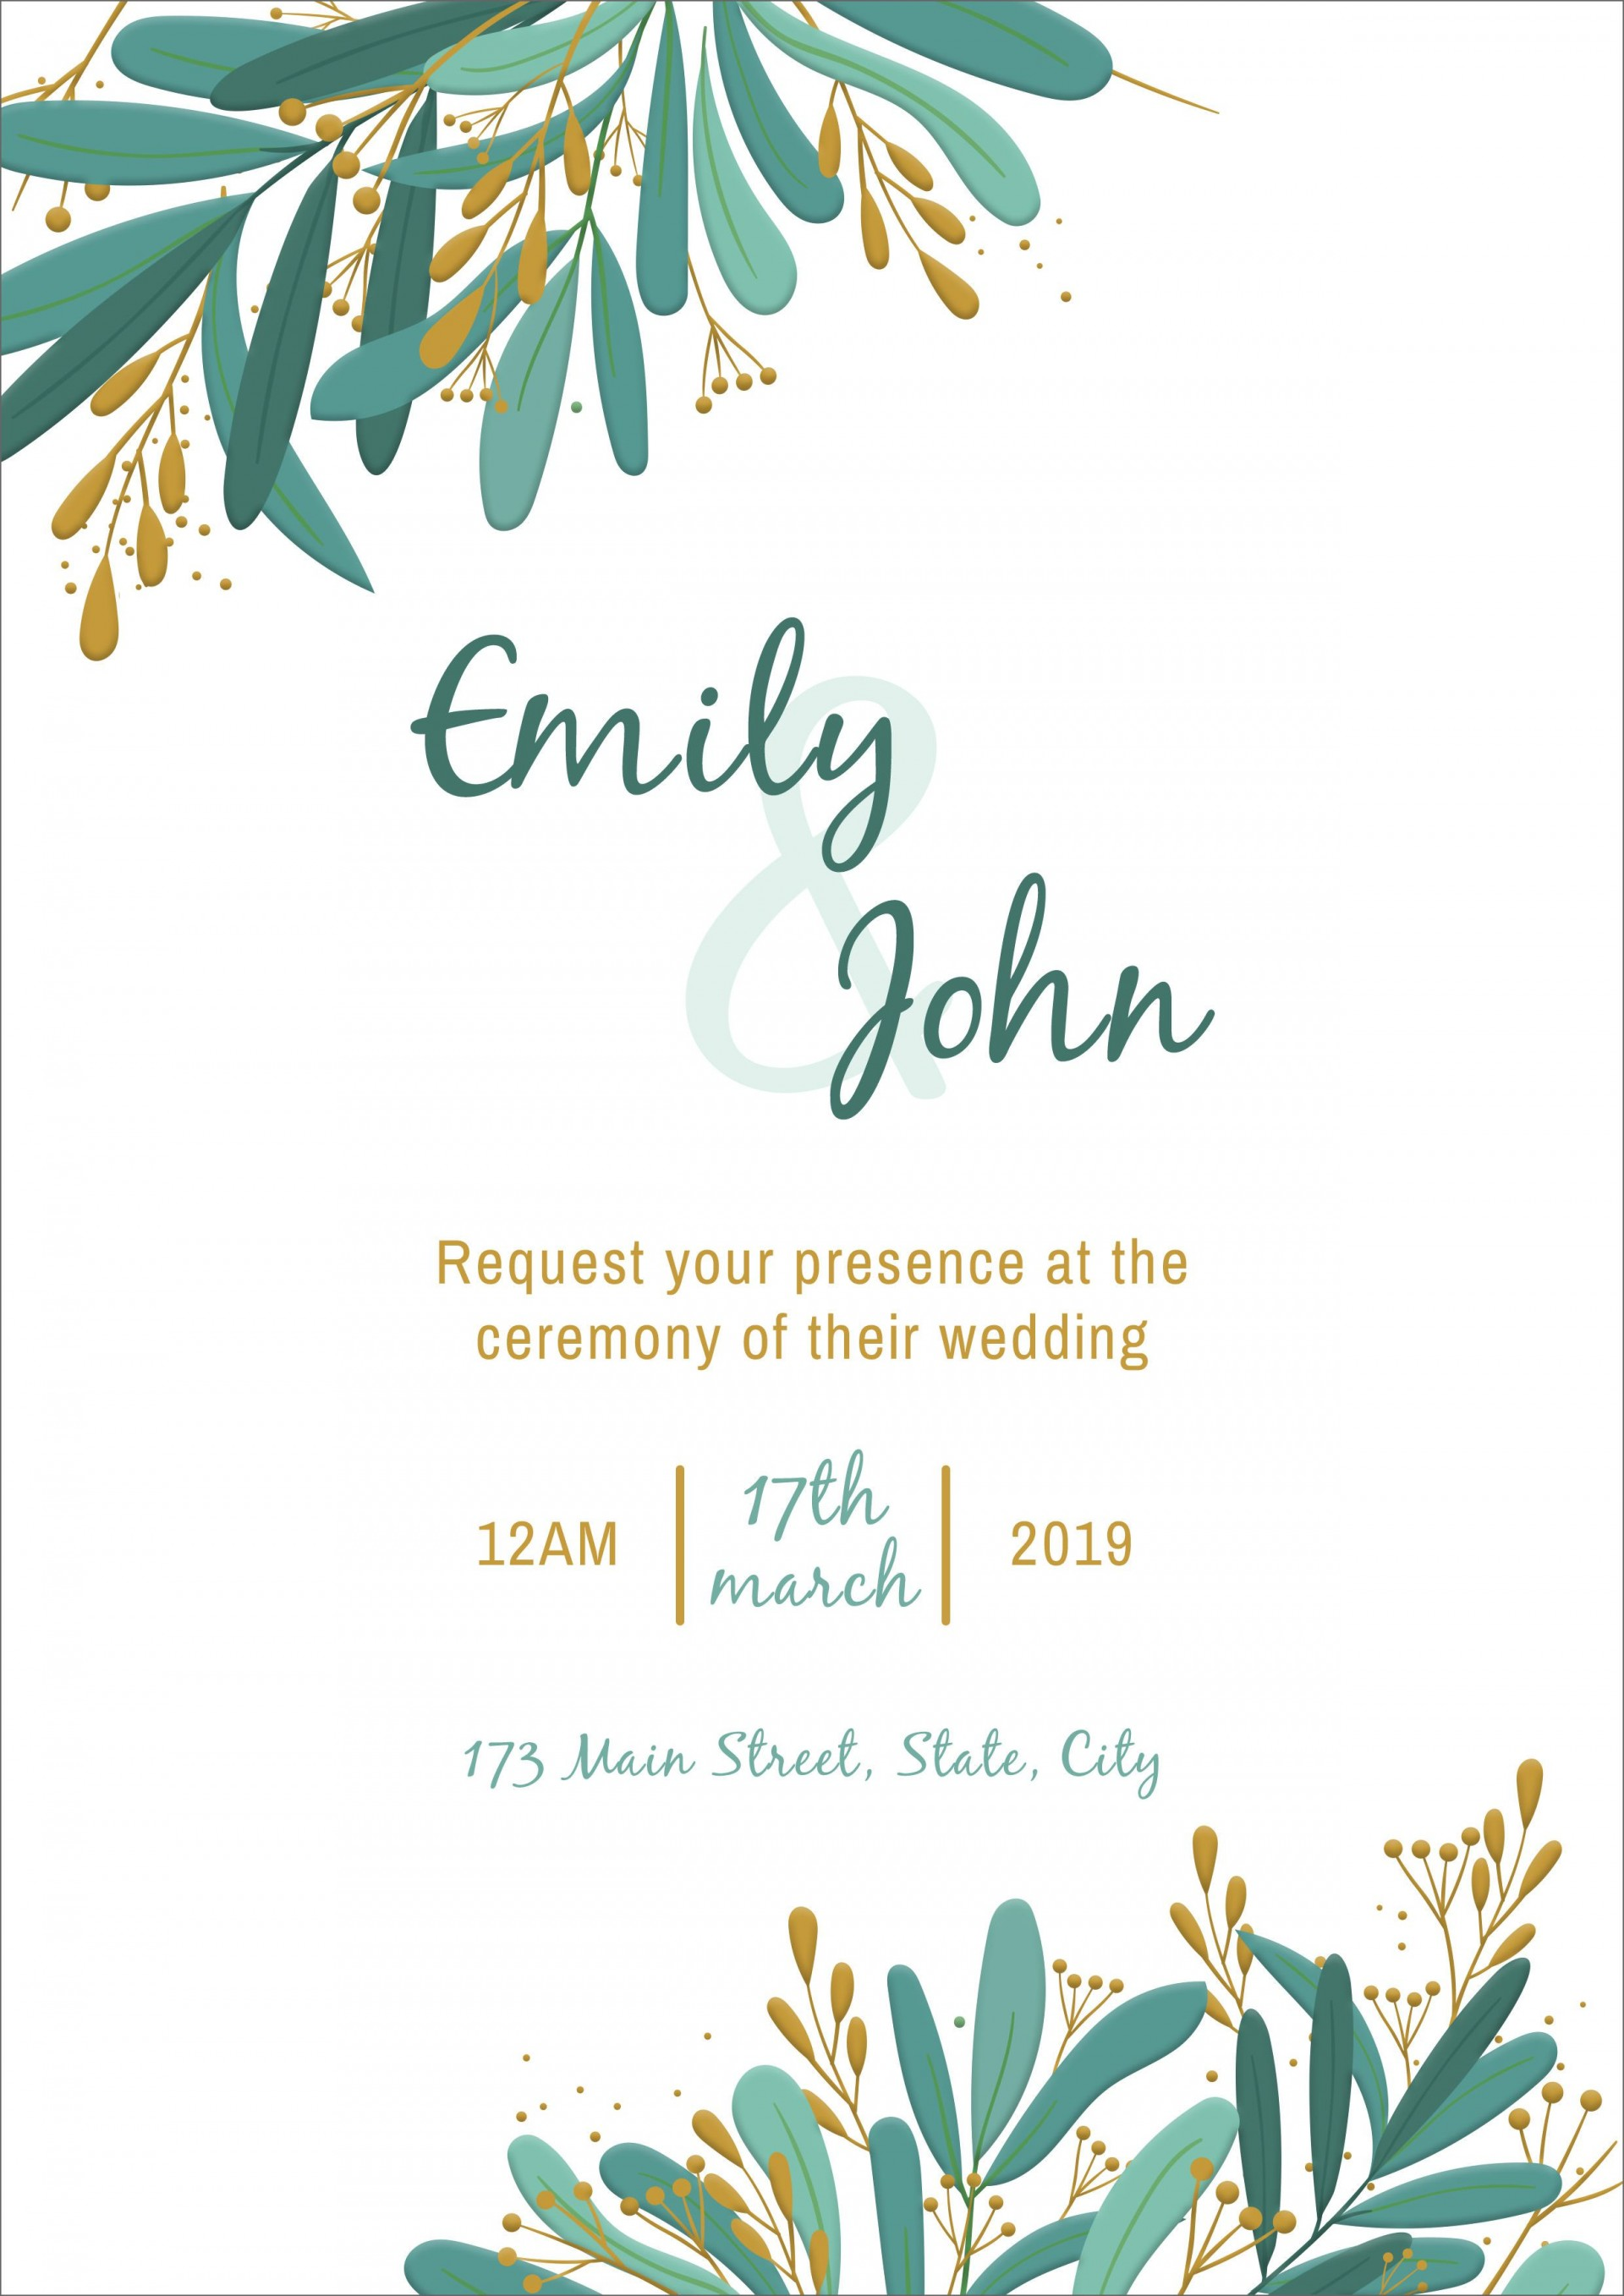 009 Exceptional Sample Wedding Invitation Card Template Concept  Templates Free Design Response Wording1920